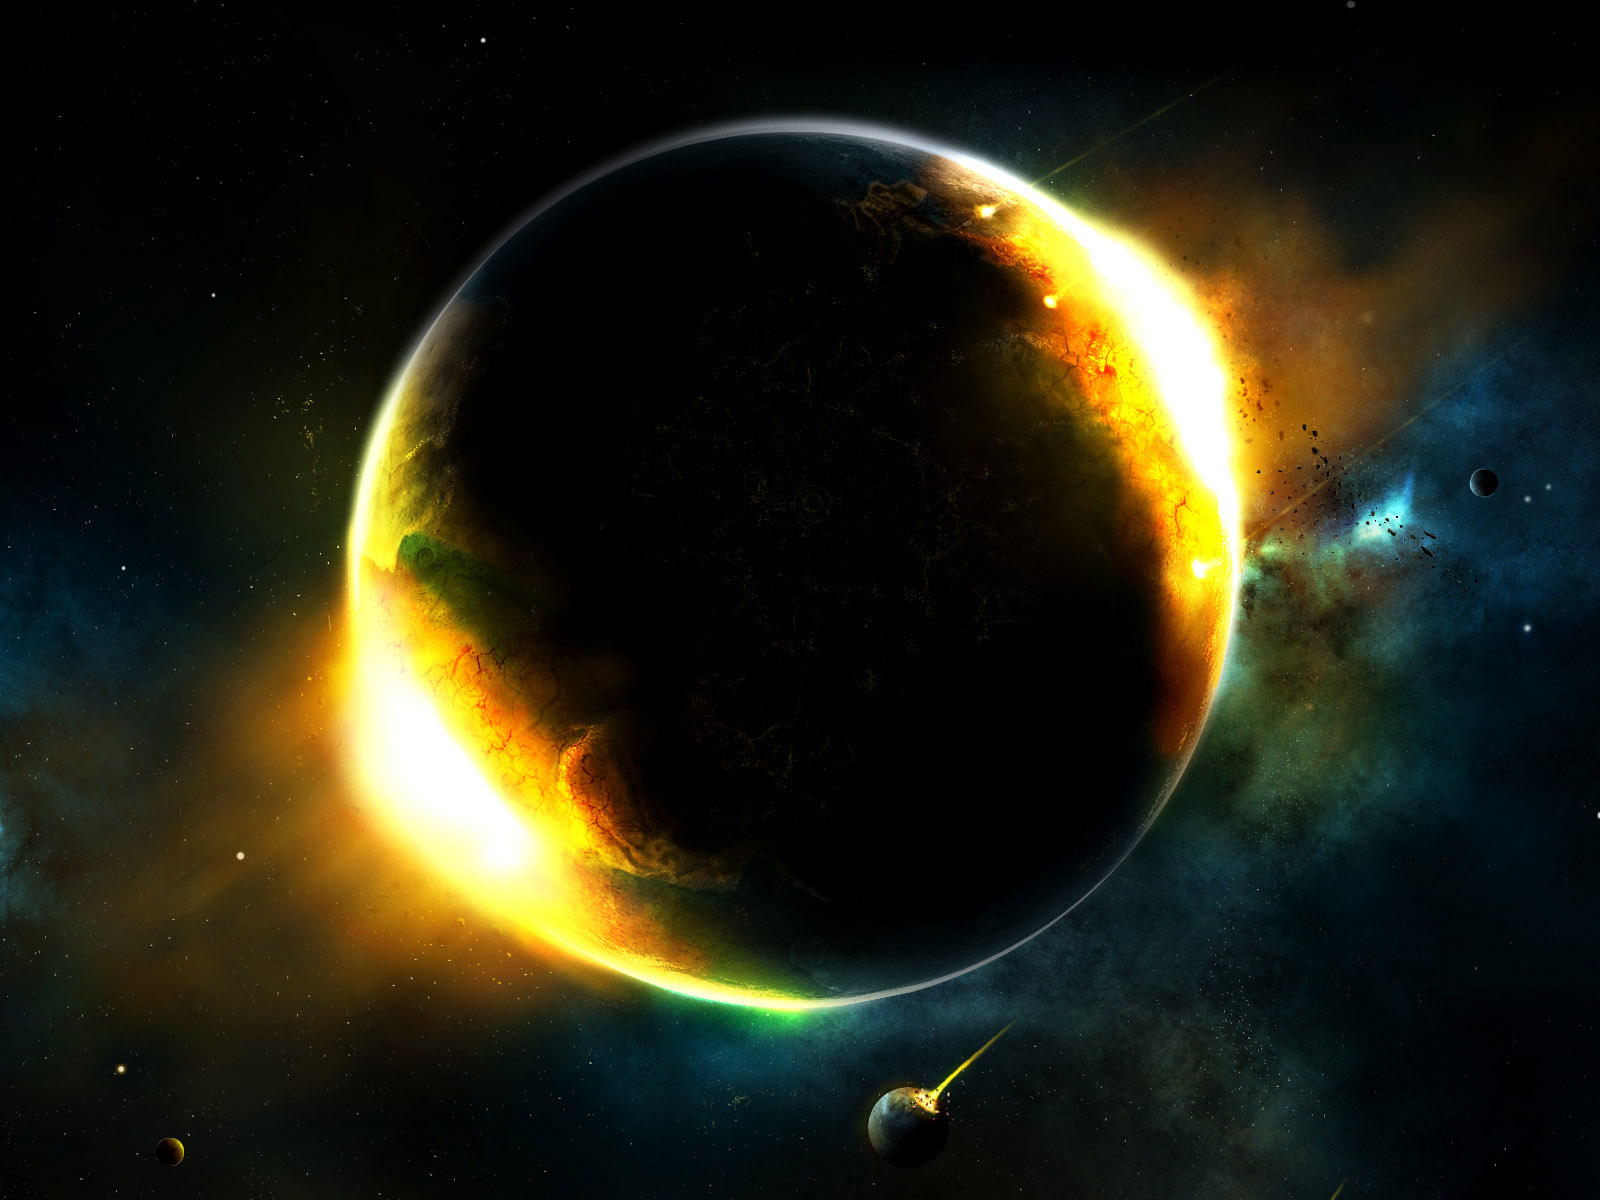 Universe Artistic Wallpapers HD 1600x Photo 18 of 54 1600x1200